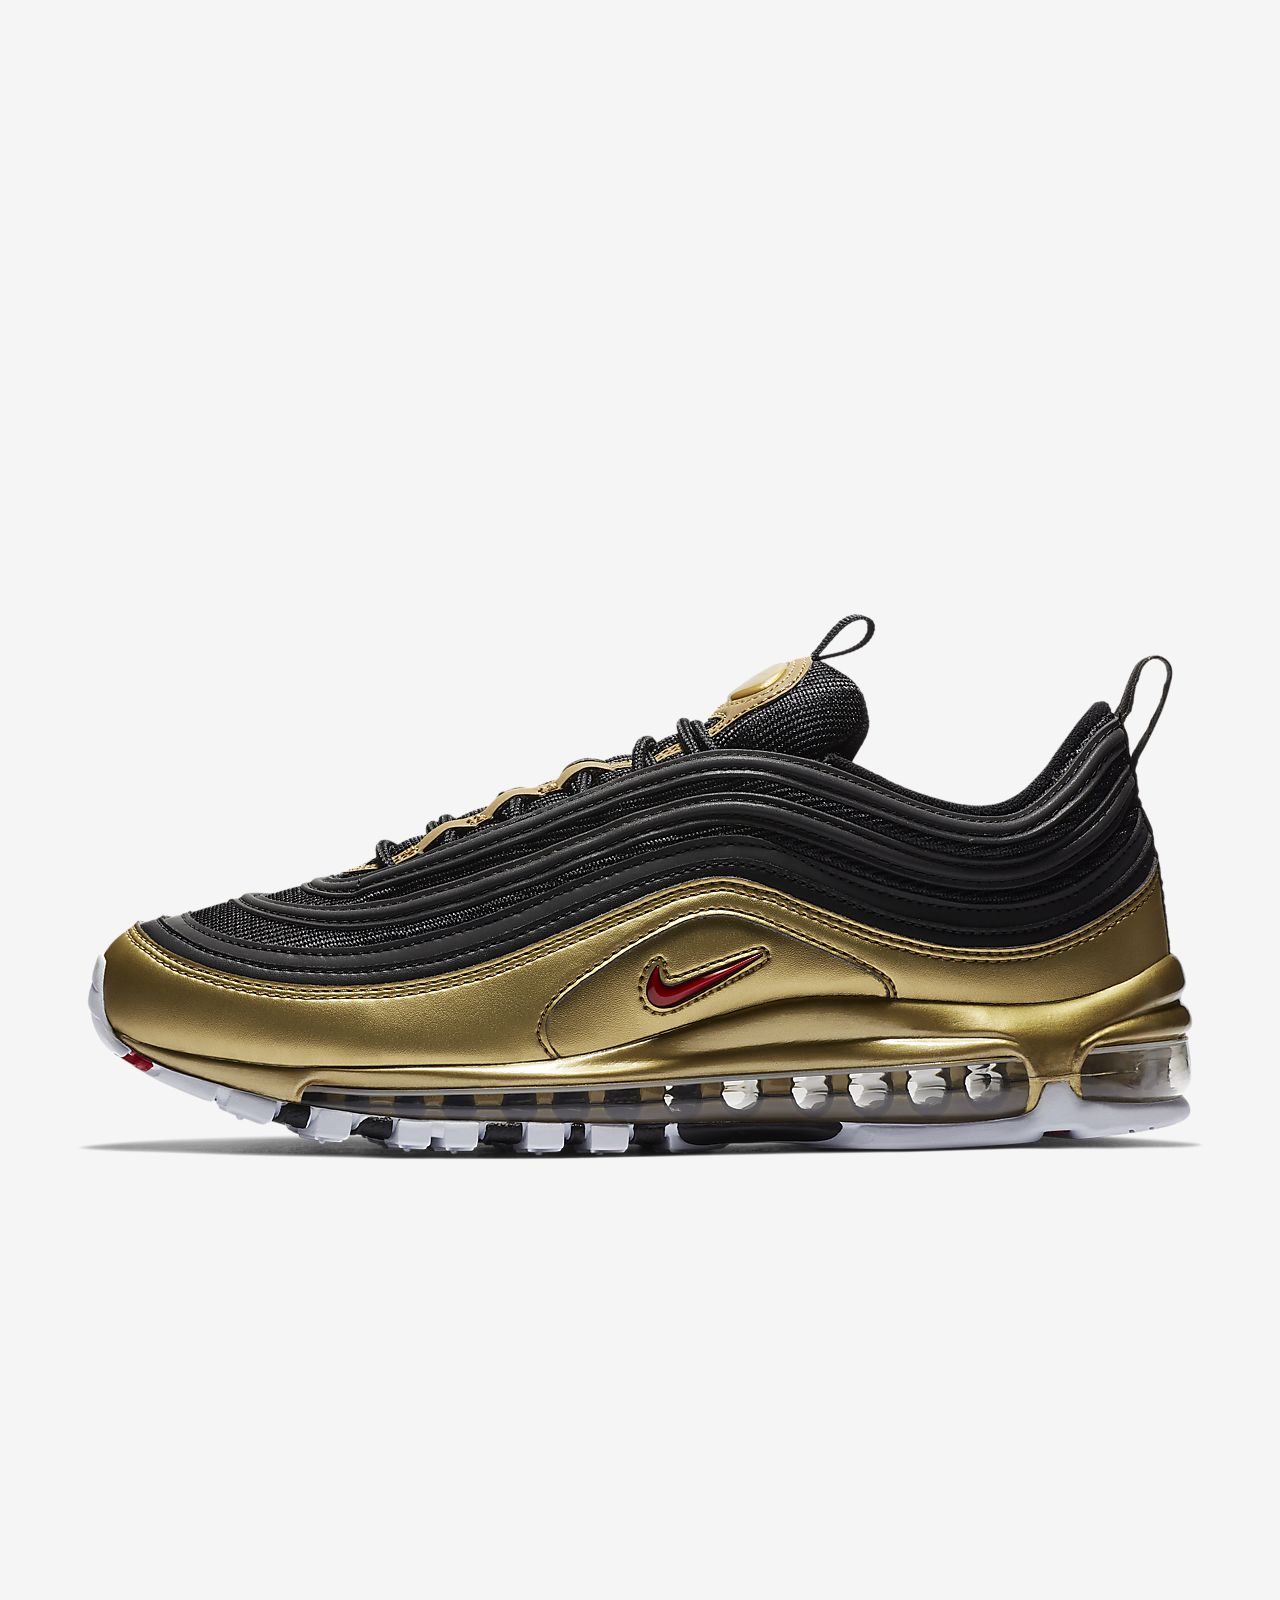 Nike Air Max 97 Premium Mens Size 13 Running Shoes New!